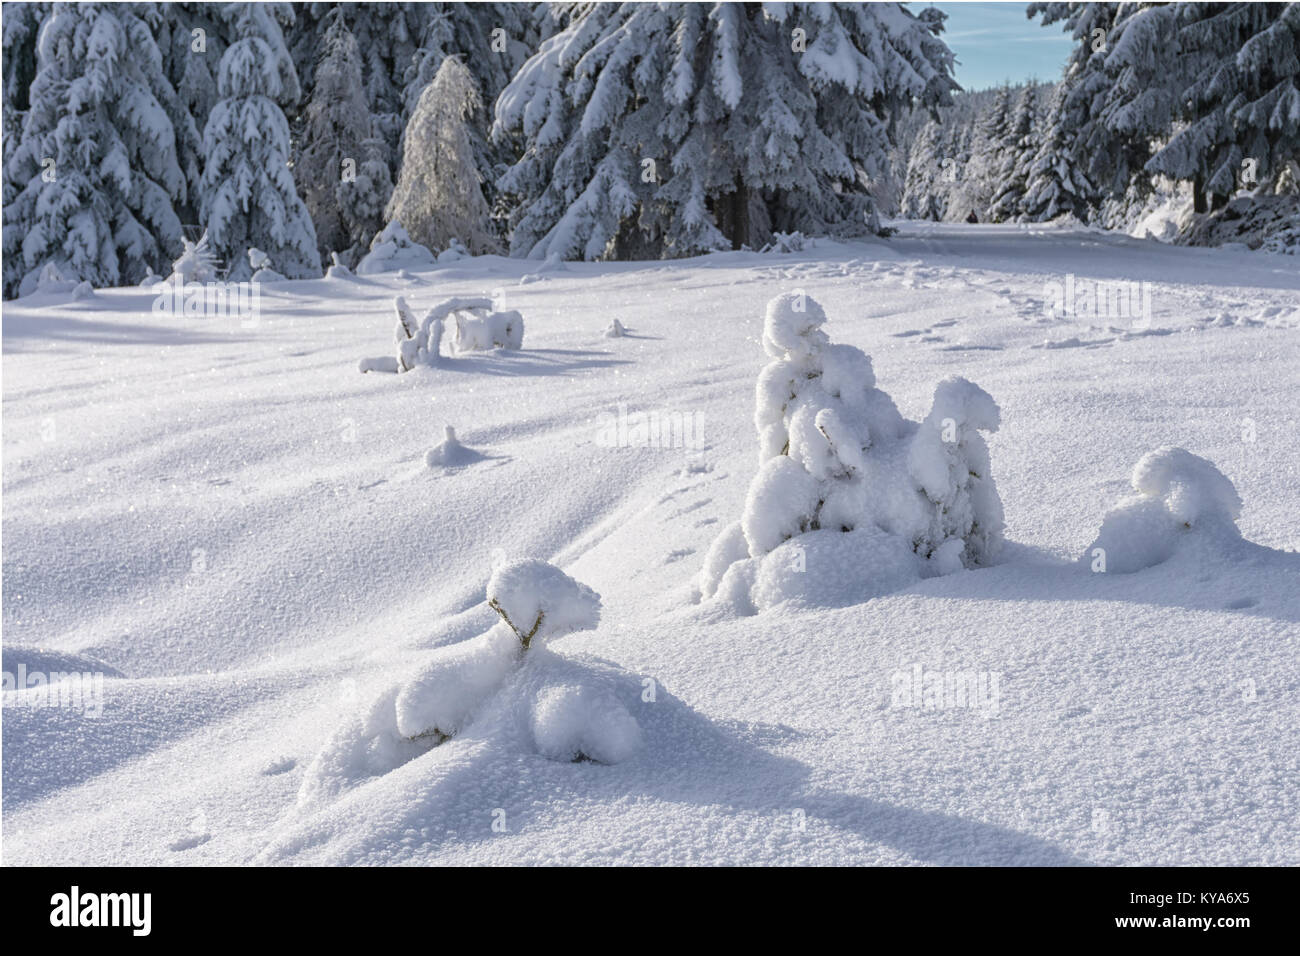 Small spruces covered with fresh snow in sunny day and animal tracks on the snow. Winter in mountain forest. - Stock Image